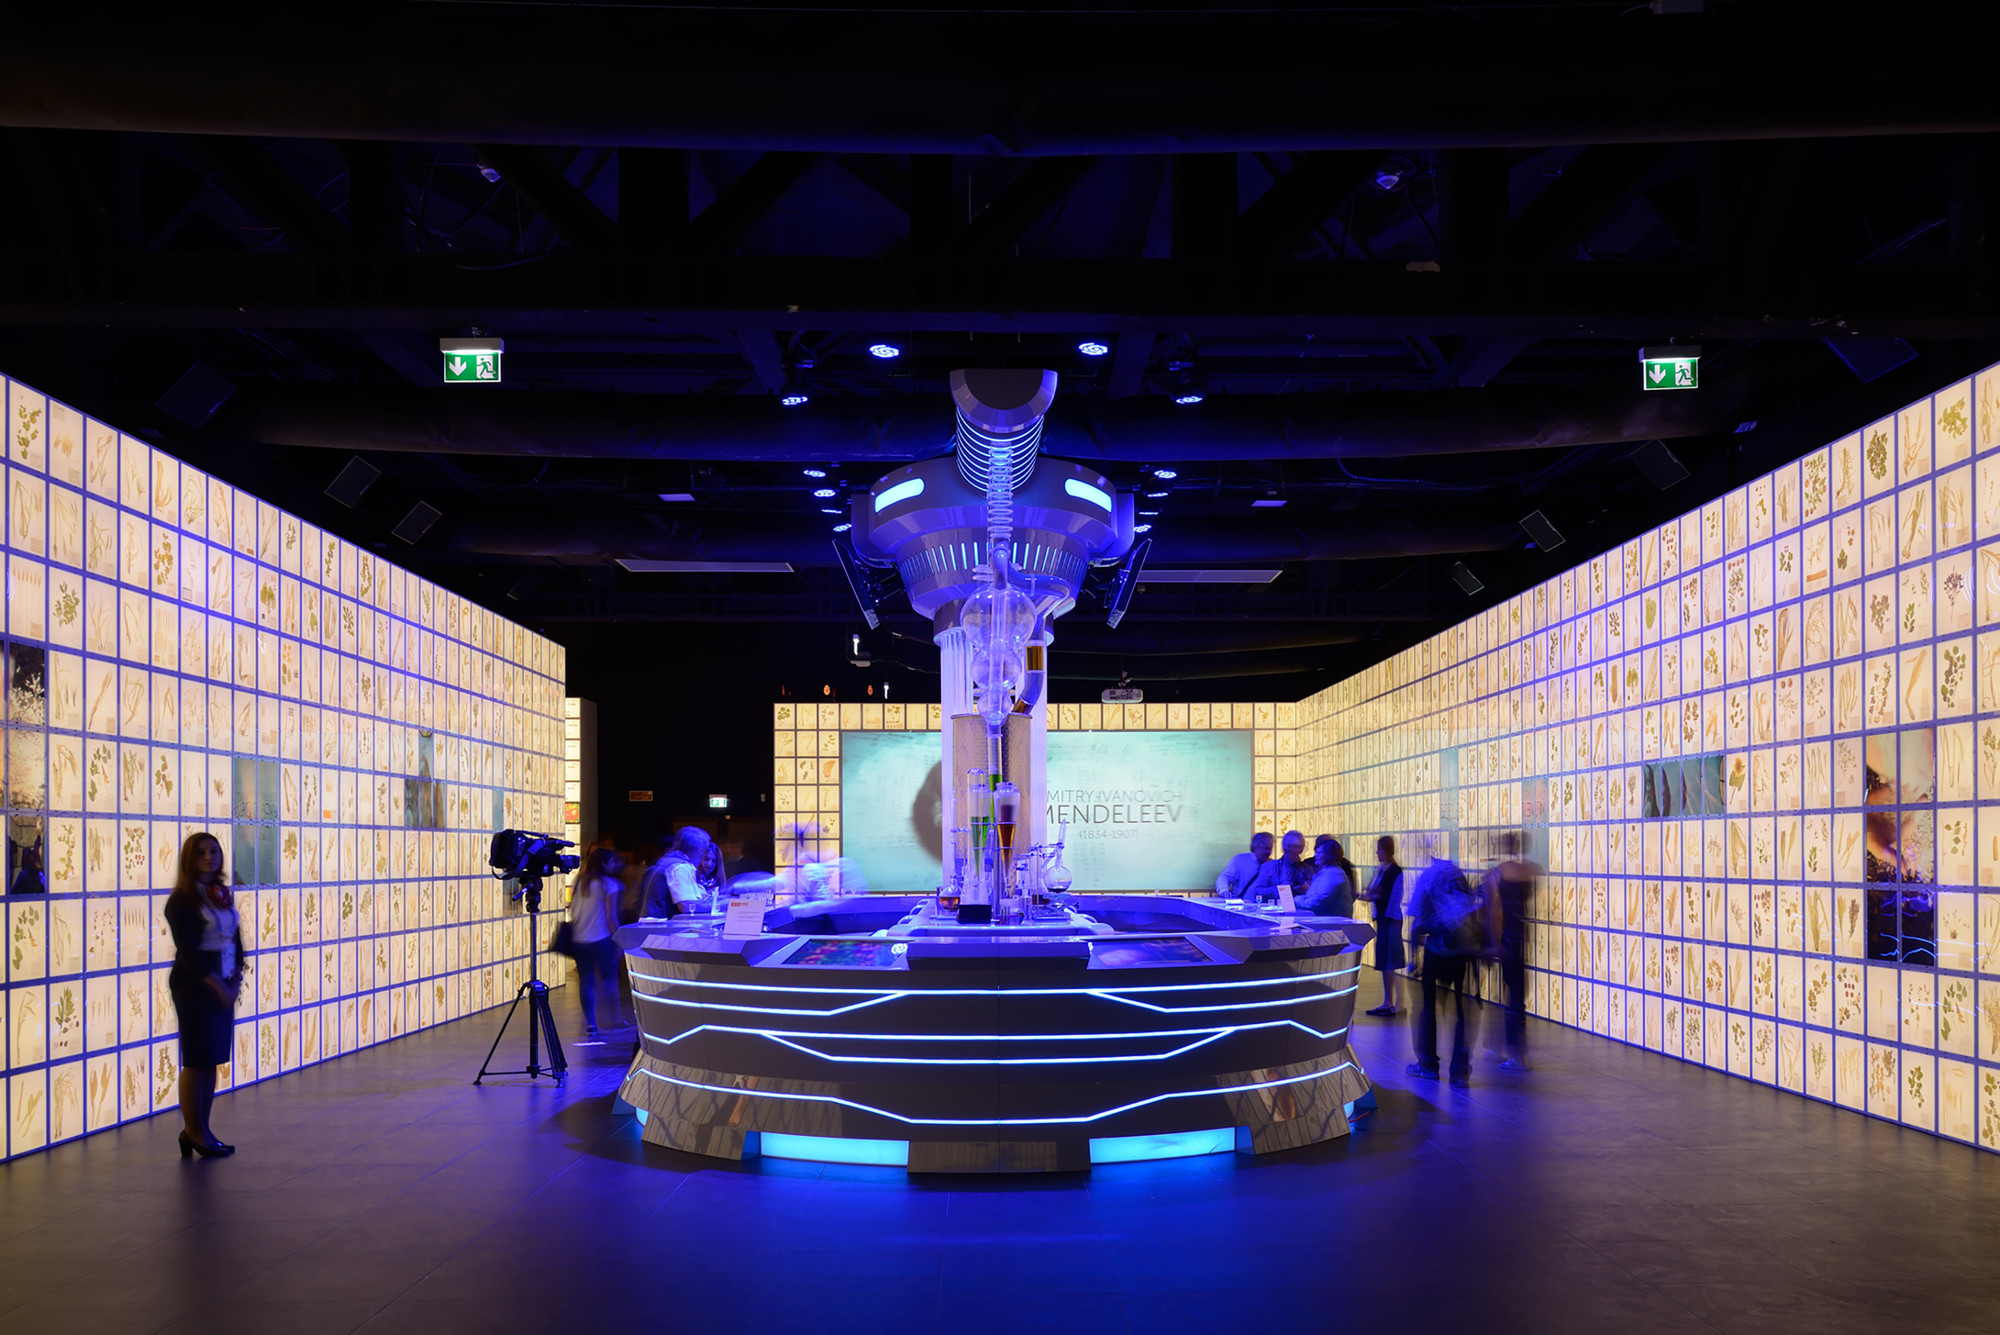 Best Stands Expo Milan : Russia pavilion u milan expo speech archdaily